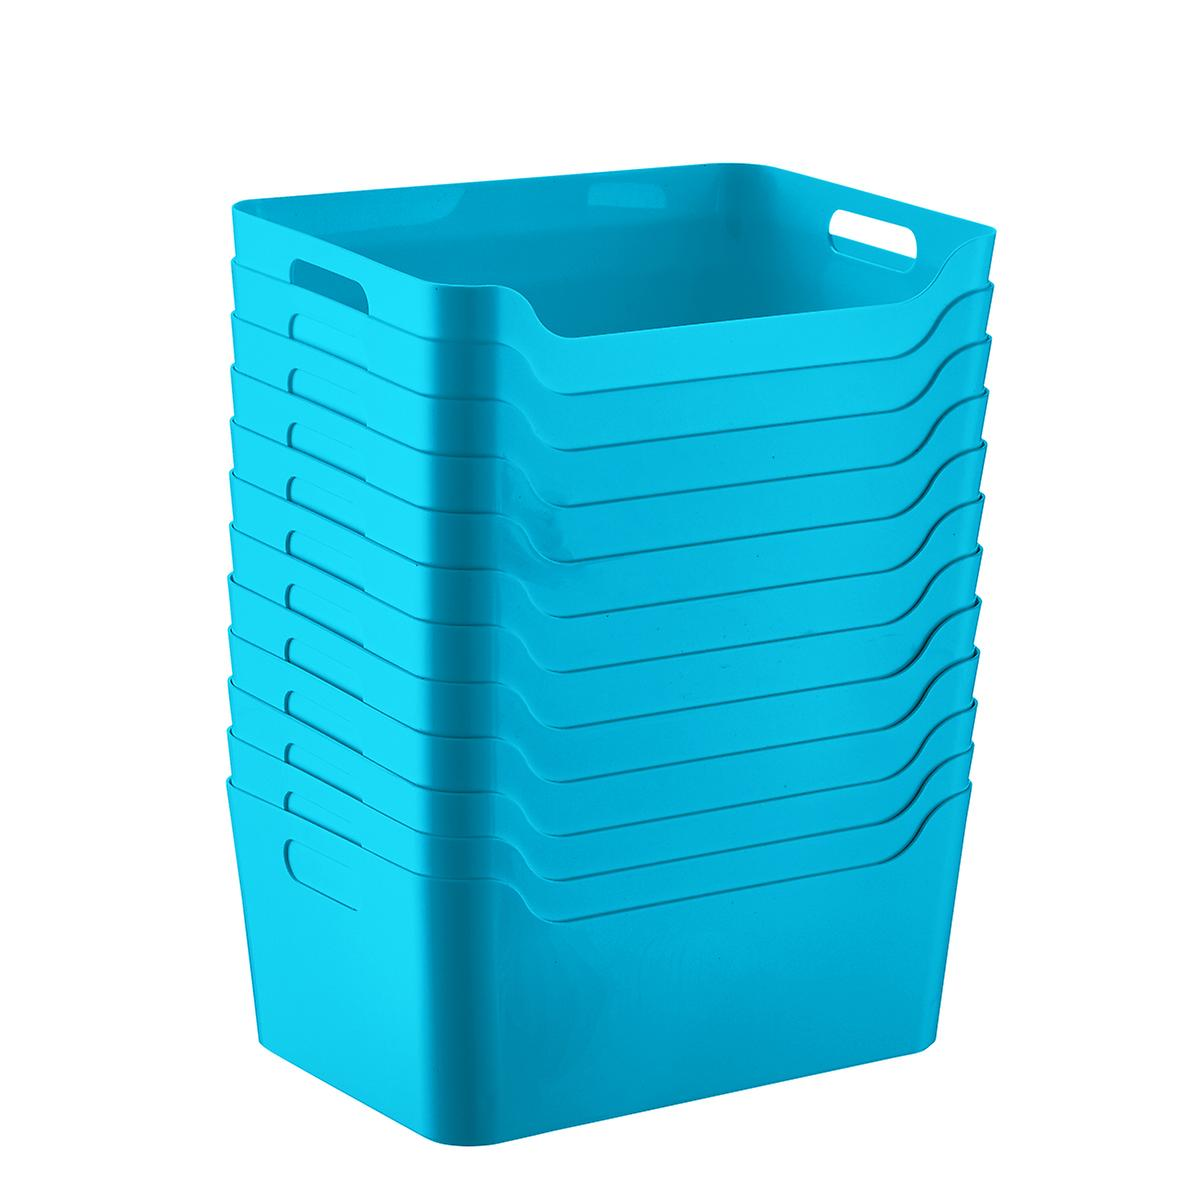 Cases of Peacock Plastic Storage Bins with Handles